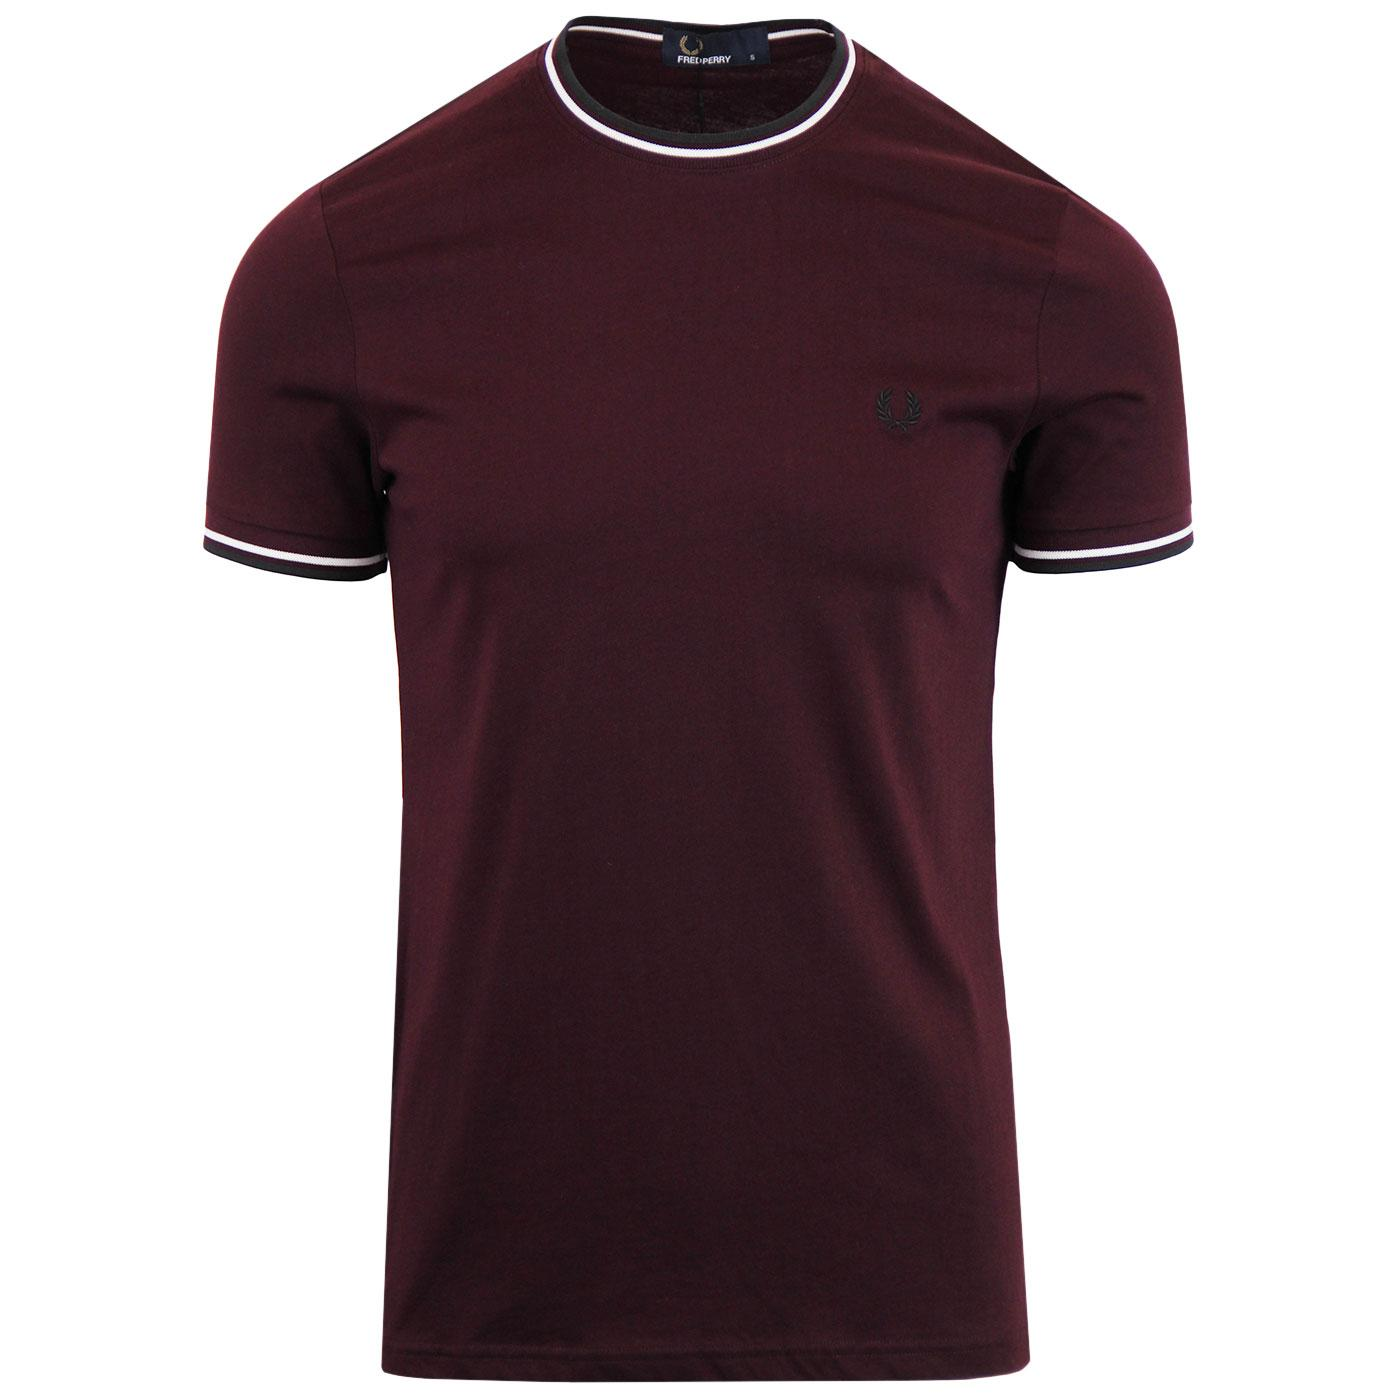 FRED PERRY Retro Twin Tipped Crew T-shirt MAHOGANY